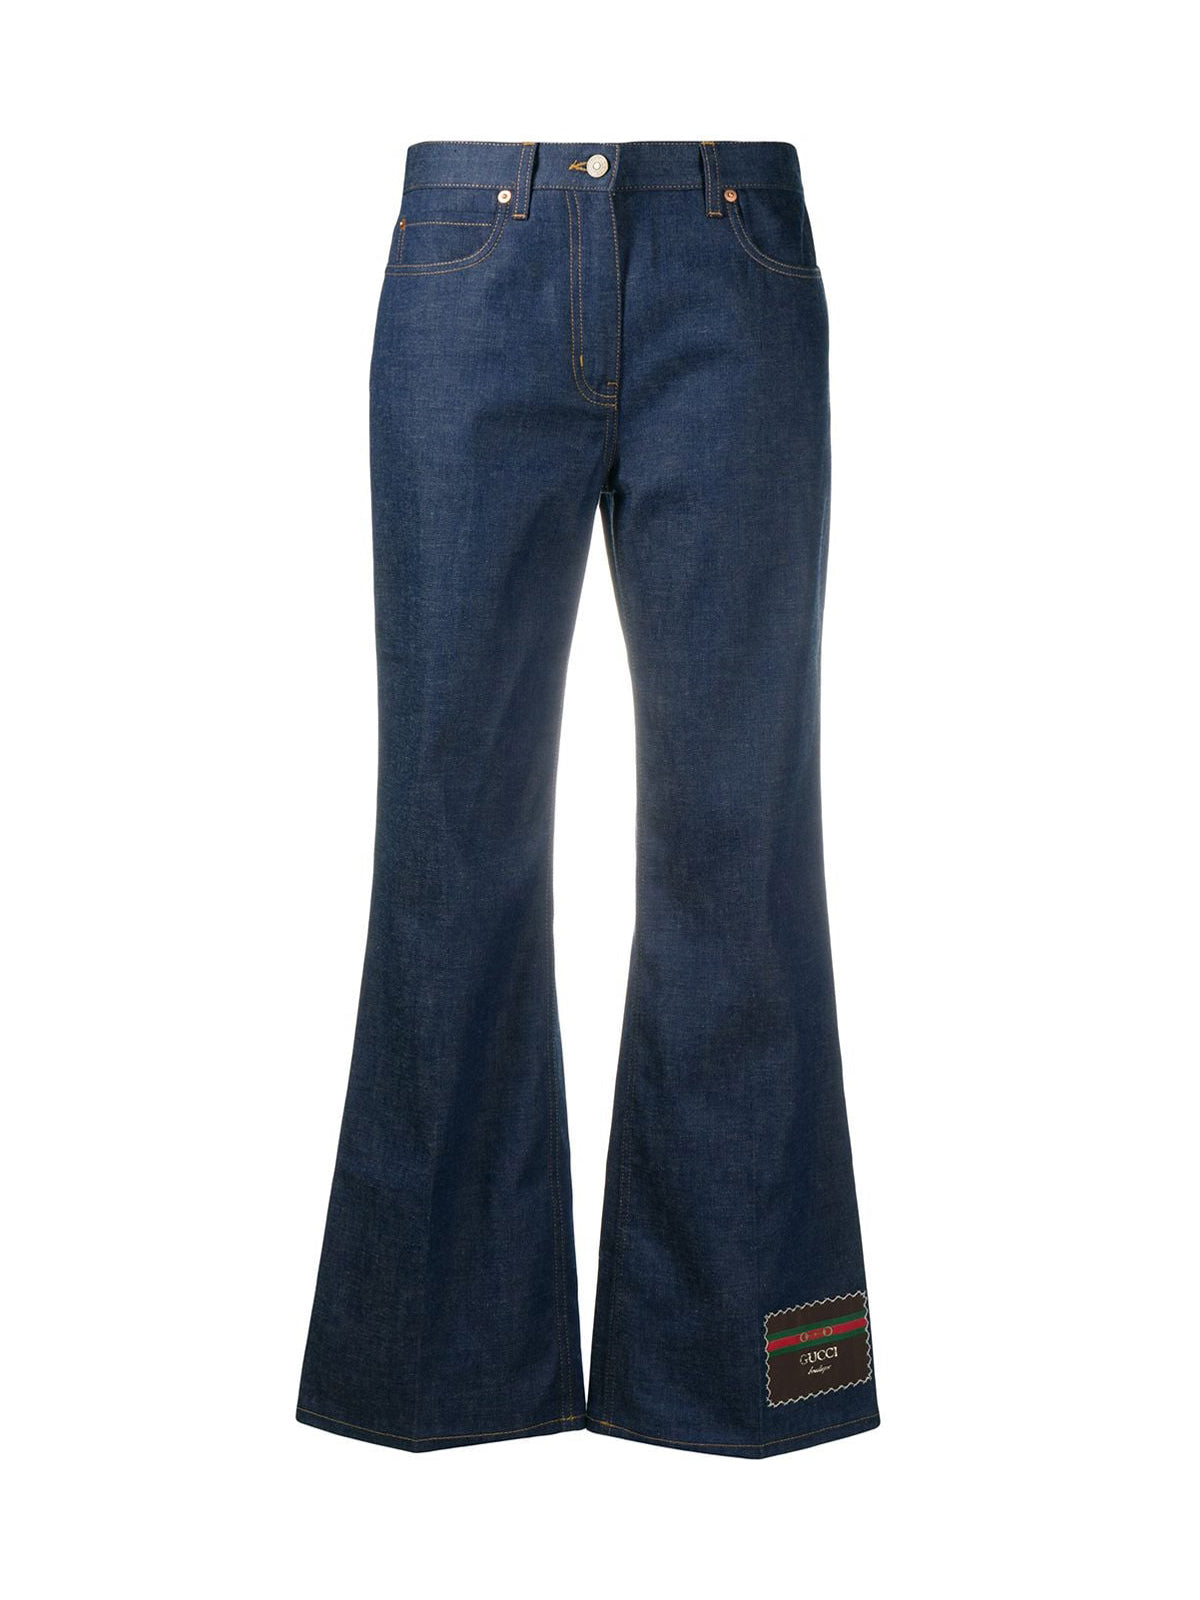 Denim trousers with Gucci Boutique